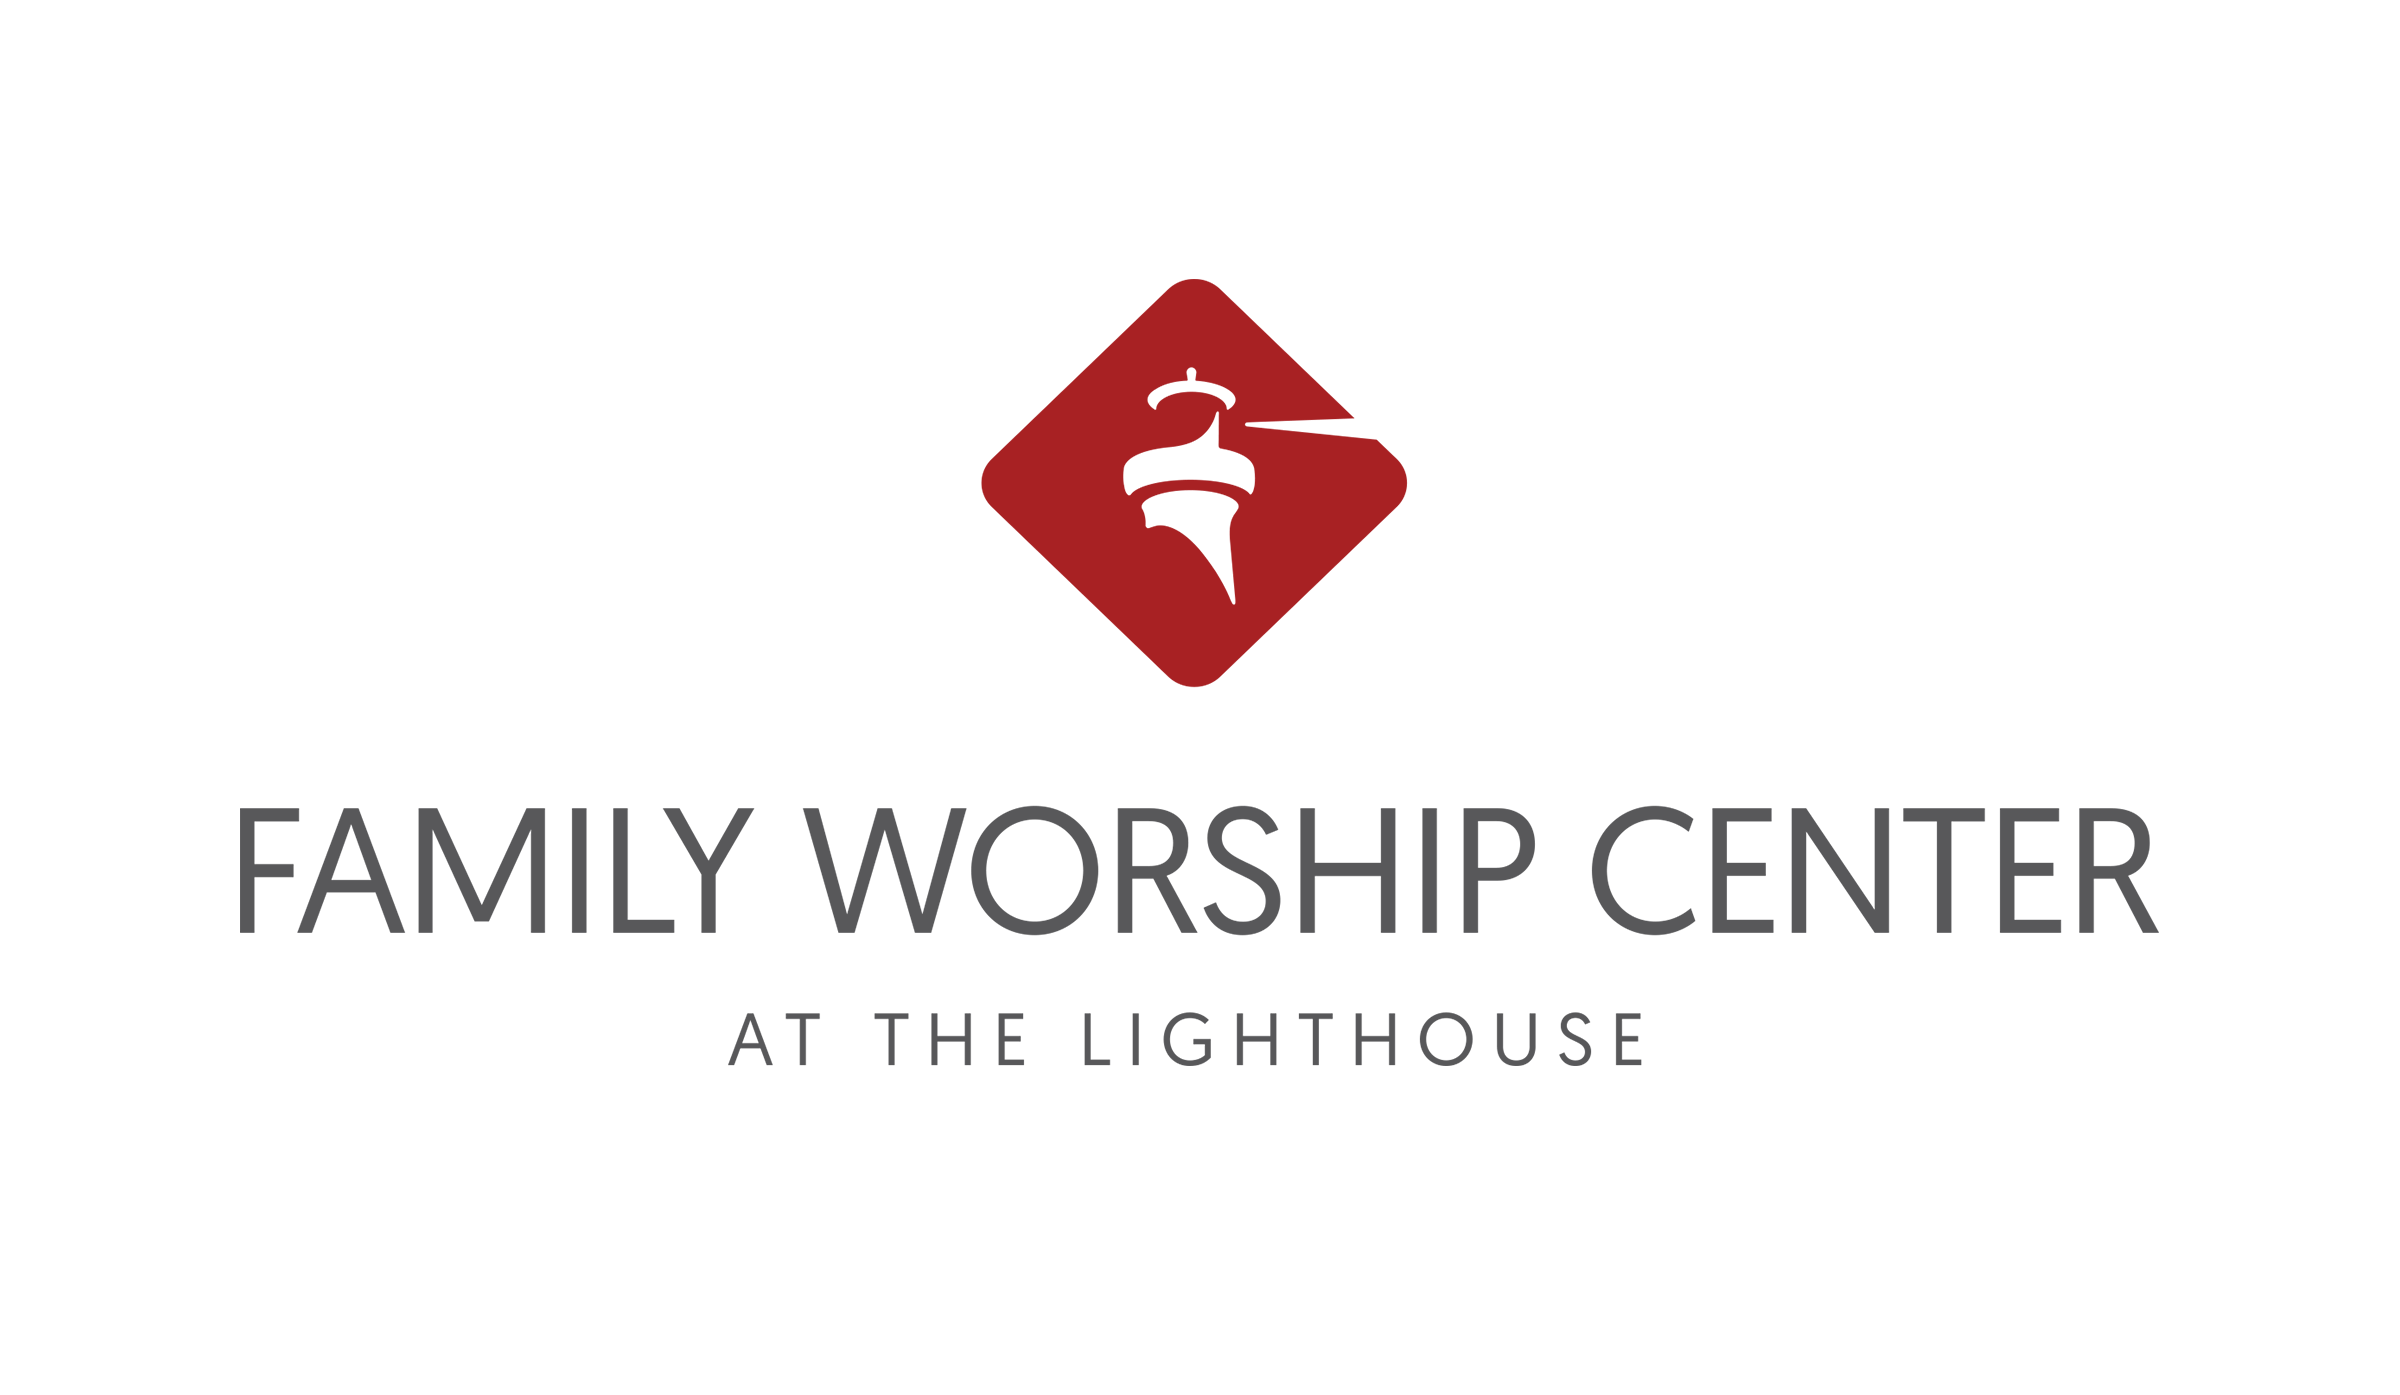 FAMILY WORSHIP CENTER AT THE LIGHTHOUSE